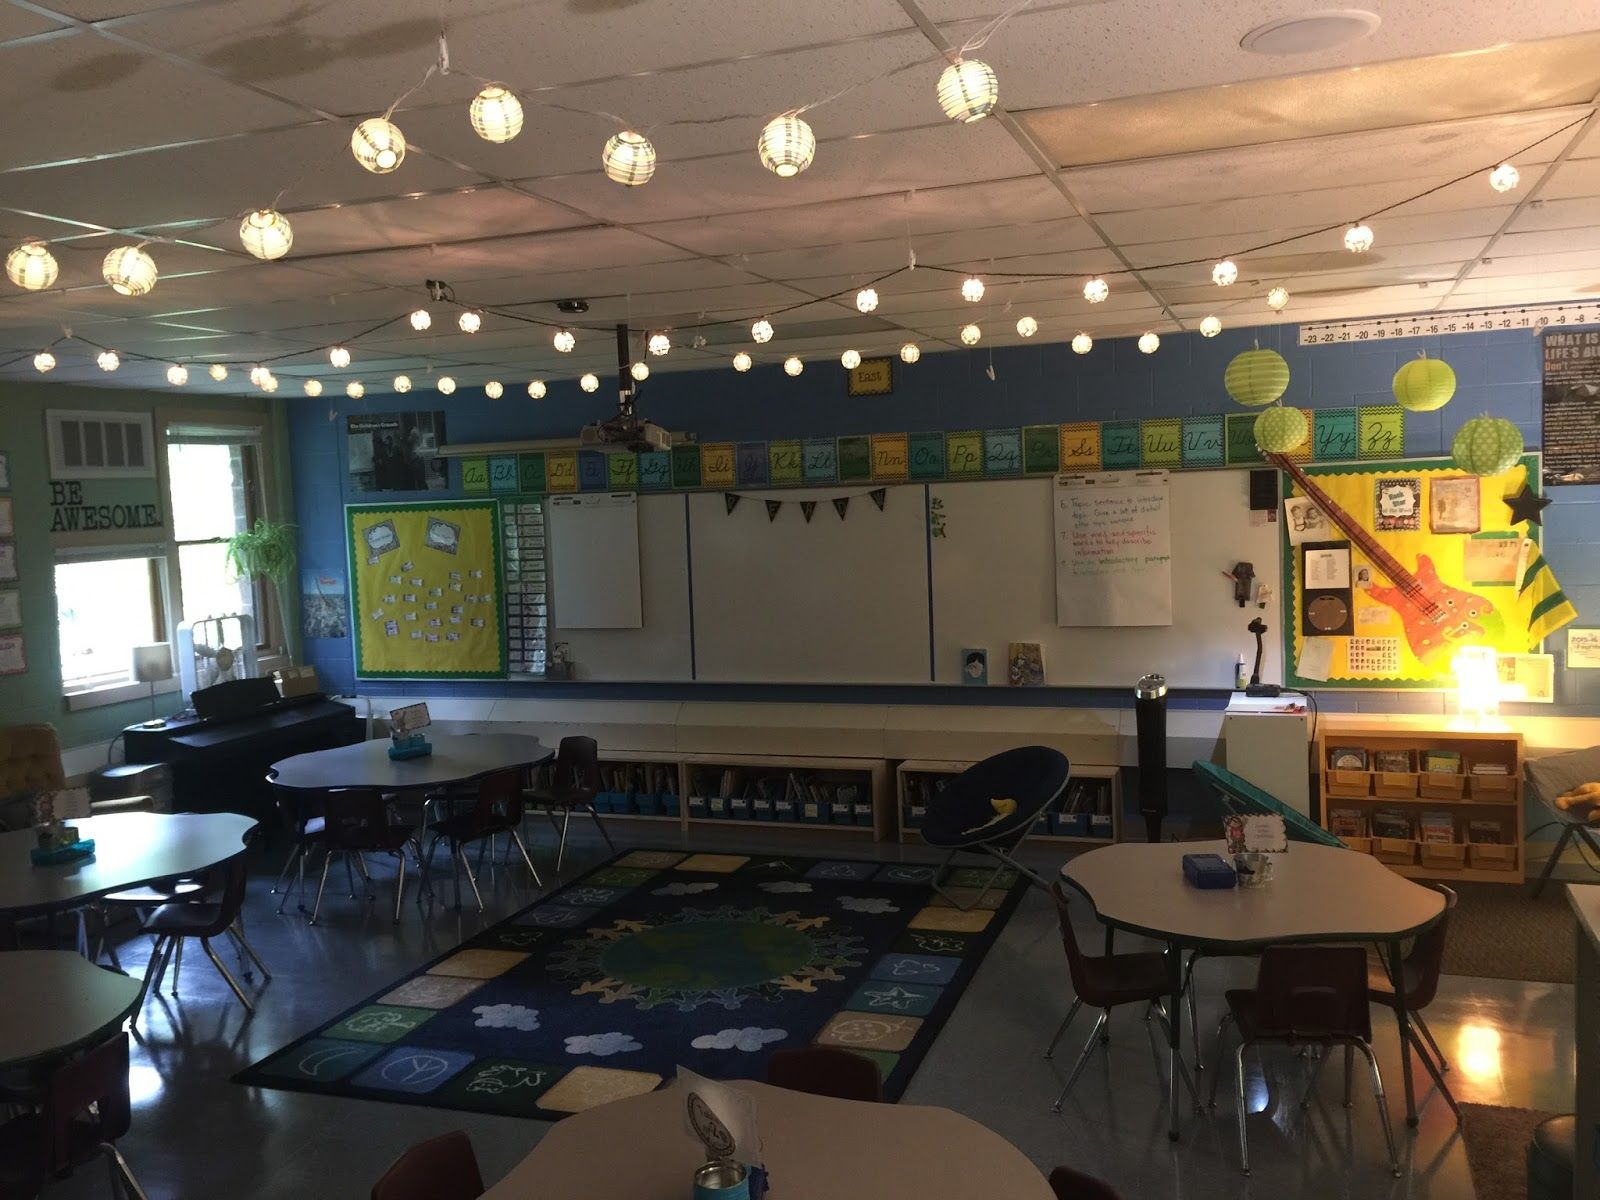 Classroom Lighting Design ~ I like the lighting in this one flexible learning